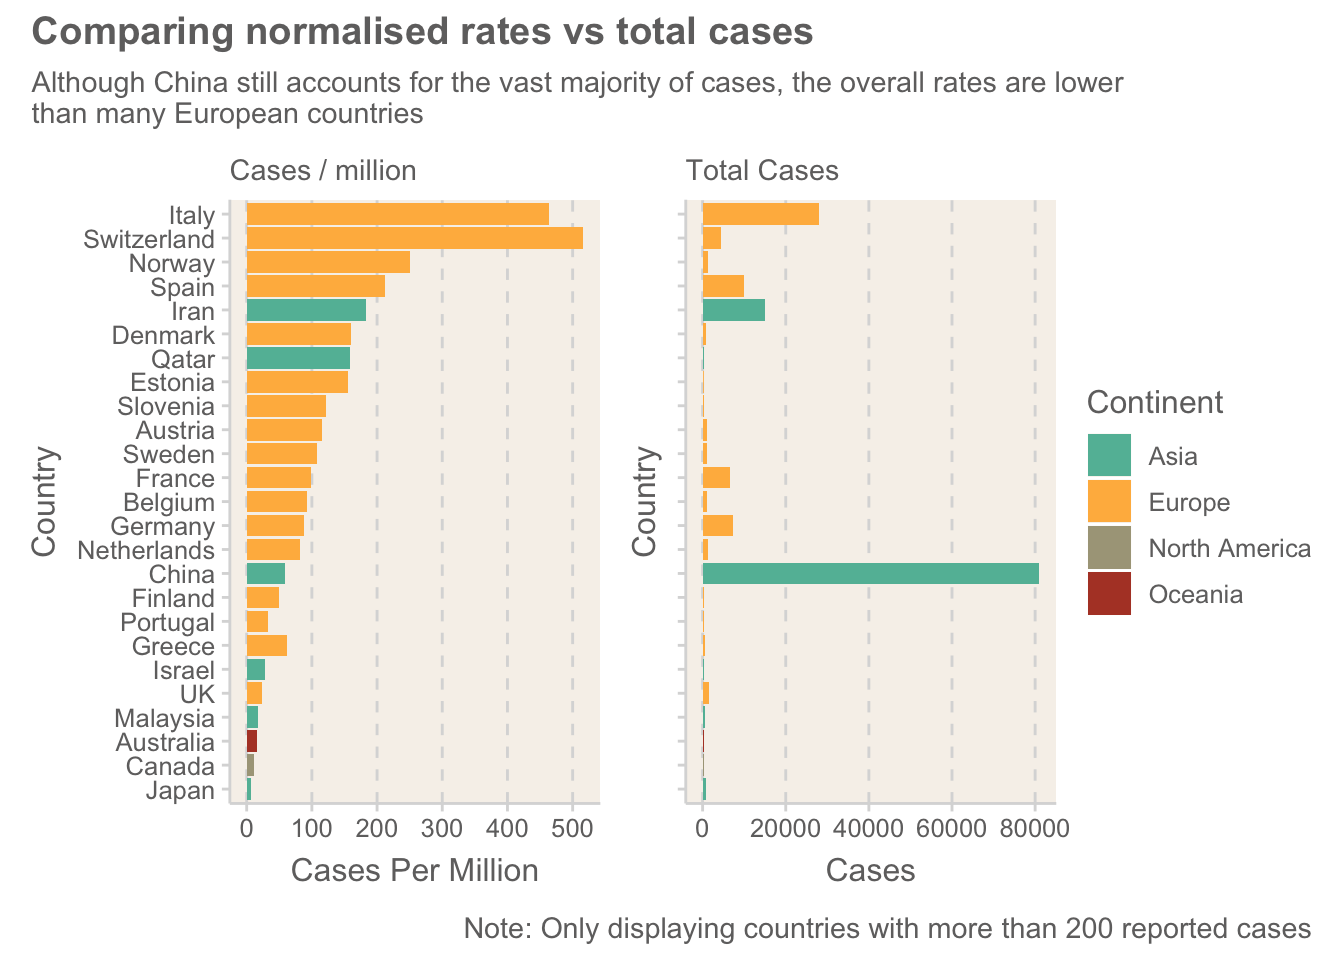 A comparison of the normalised ranking of countries against total cases